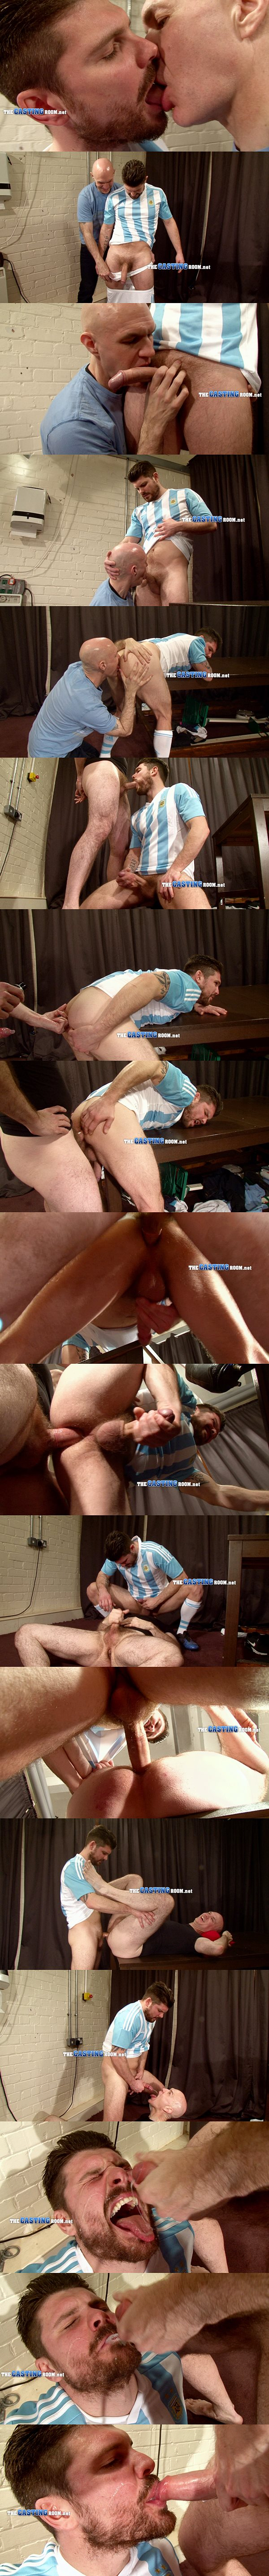 Adrian fucks hot macho hunk Lionel Kempes' tight virgin ass in Second Audition at Thecastingroom 02